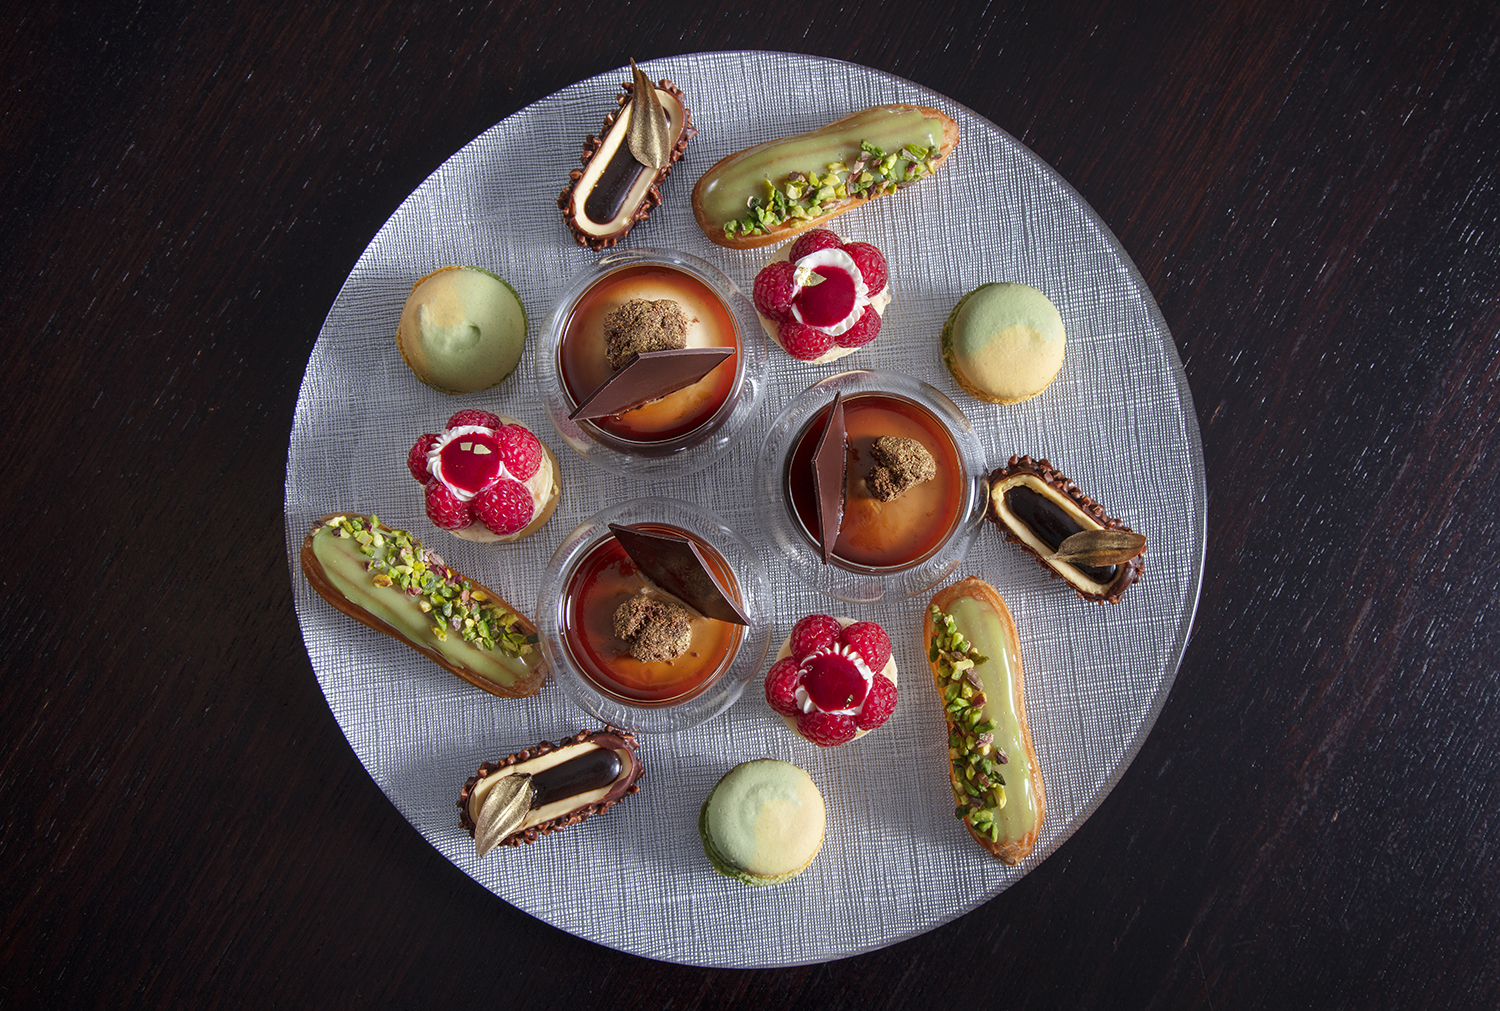 InterContinental-Geneve-Take-away-Brunch-dominical-mignardise-3